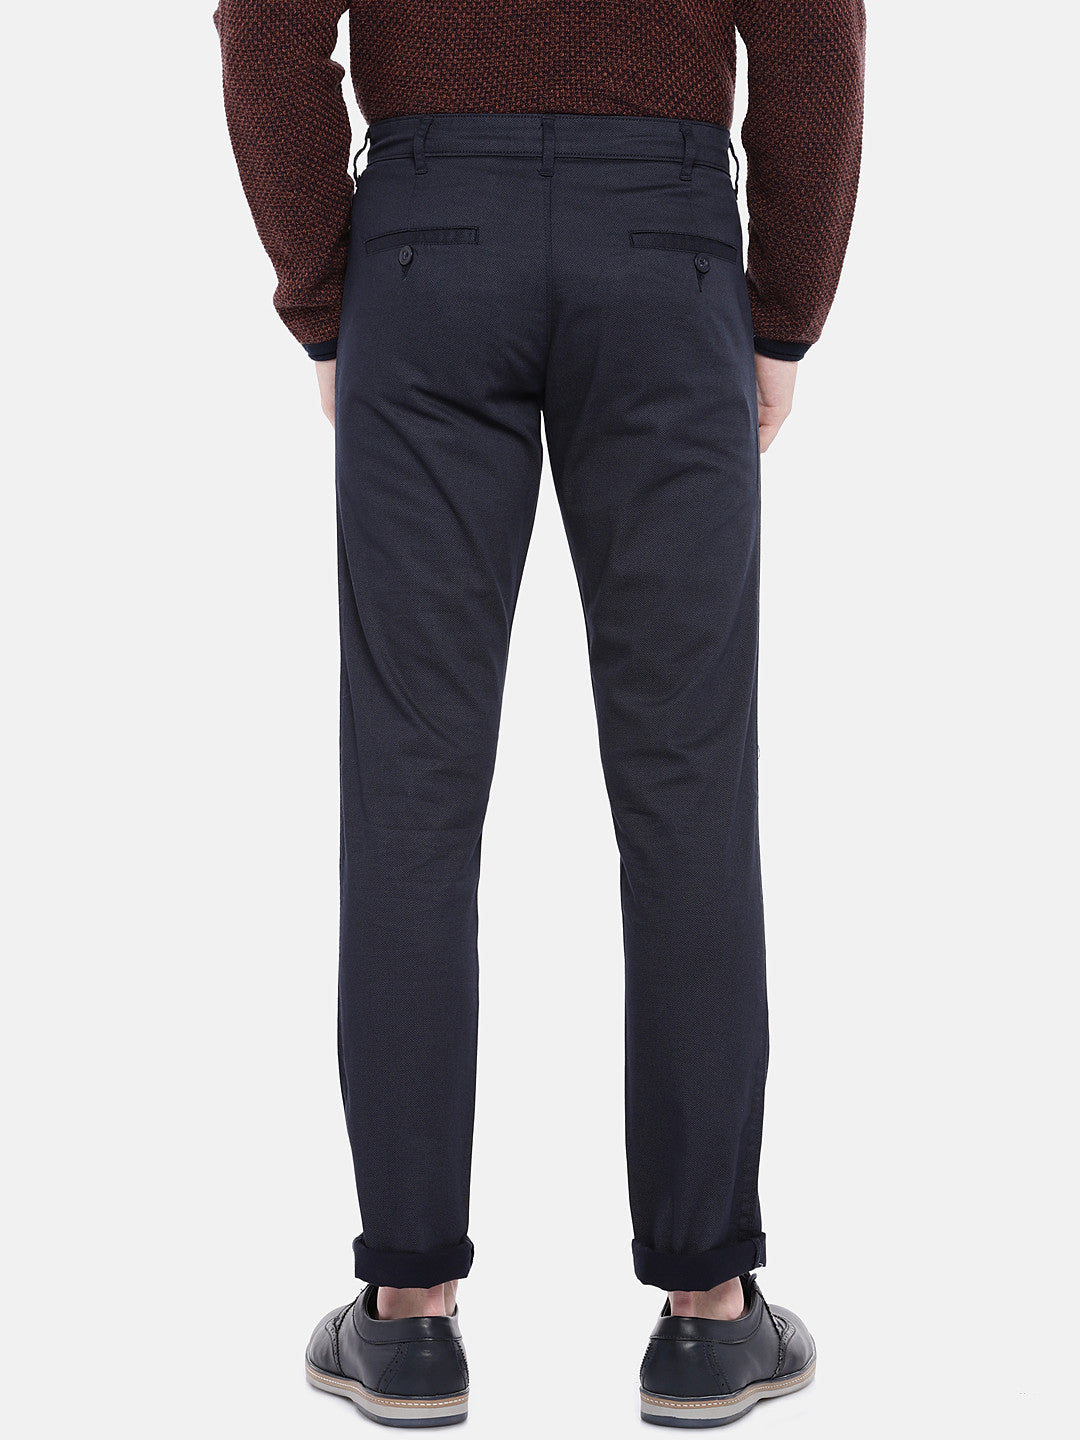 Navy Blue Regular Fit Solid Chinos-3